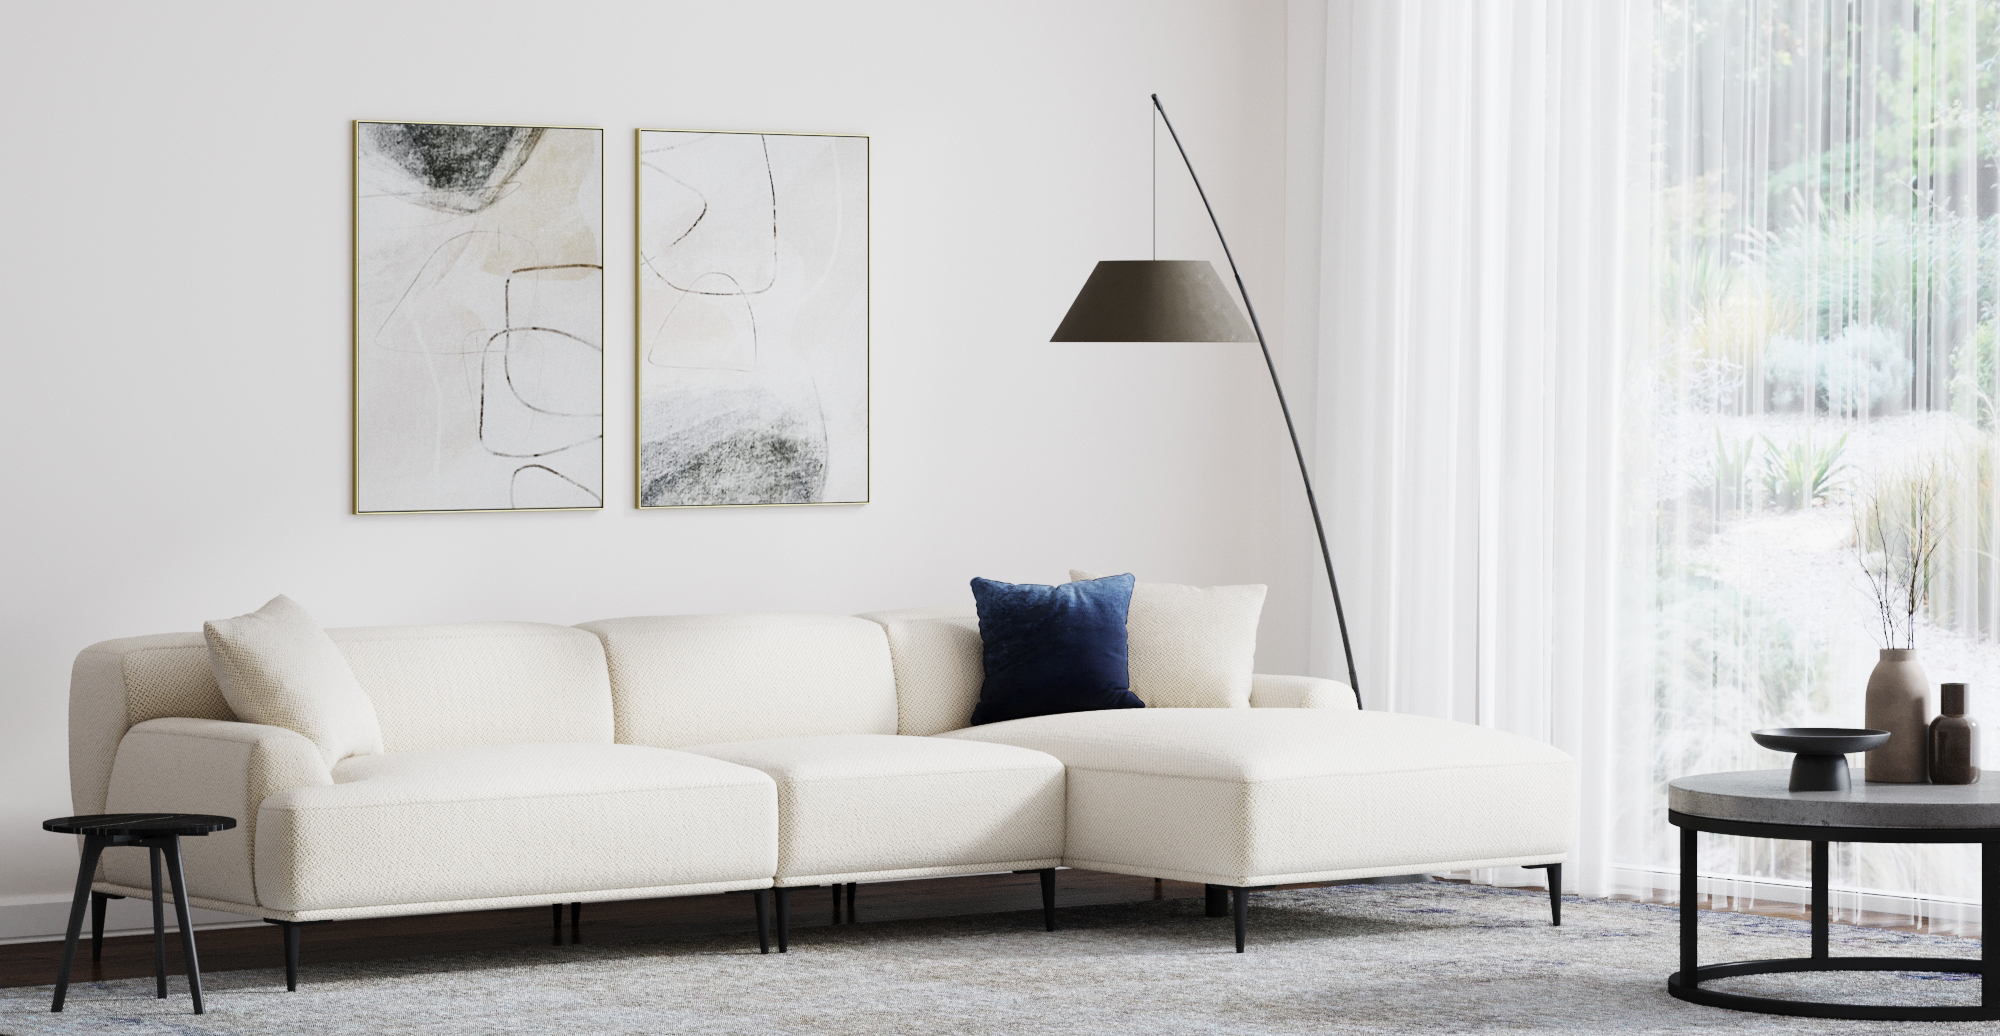 Brosa Seta 5 Seater Sofa with Chaise styled in modern living room